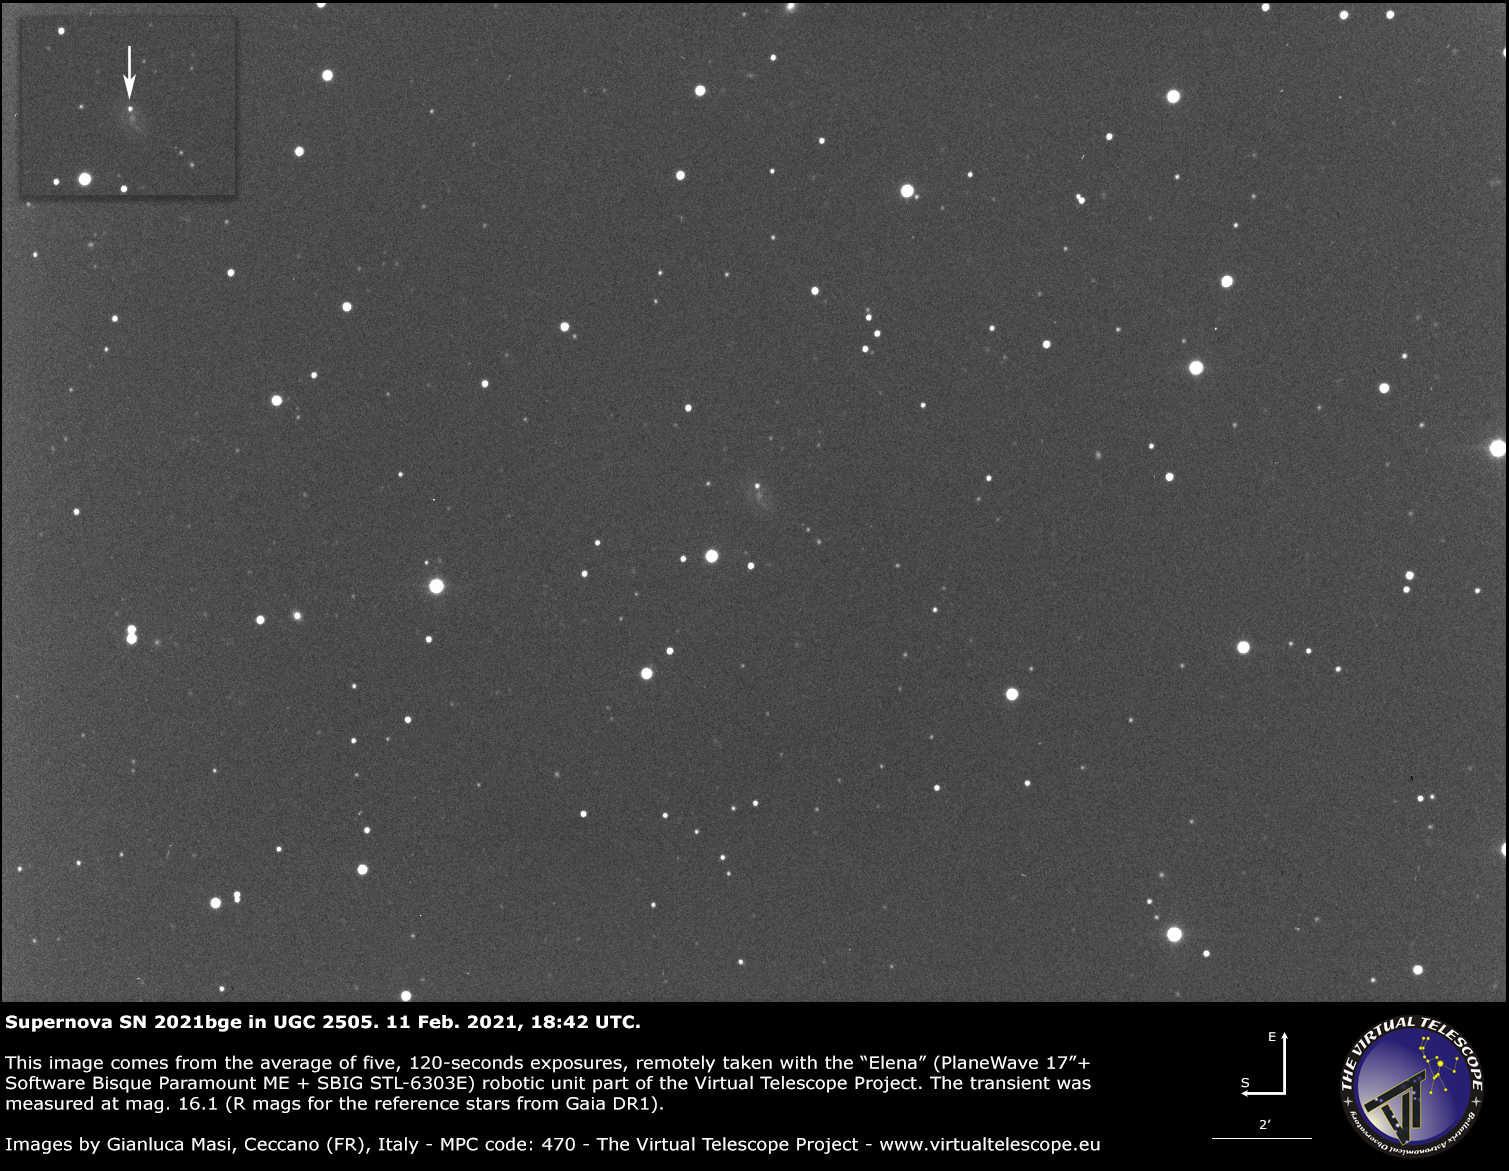 Supernova SN 2021bge in UGC 2505: 11 Feb. 2021